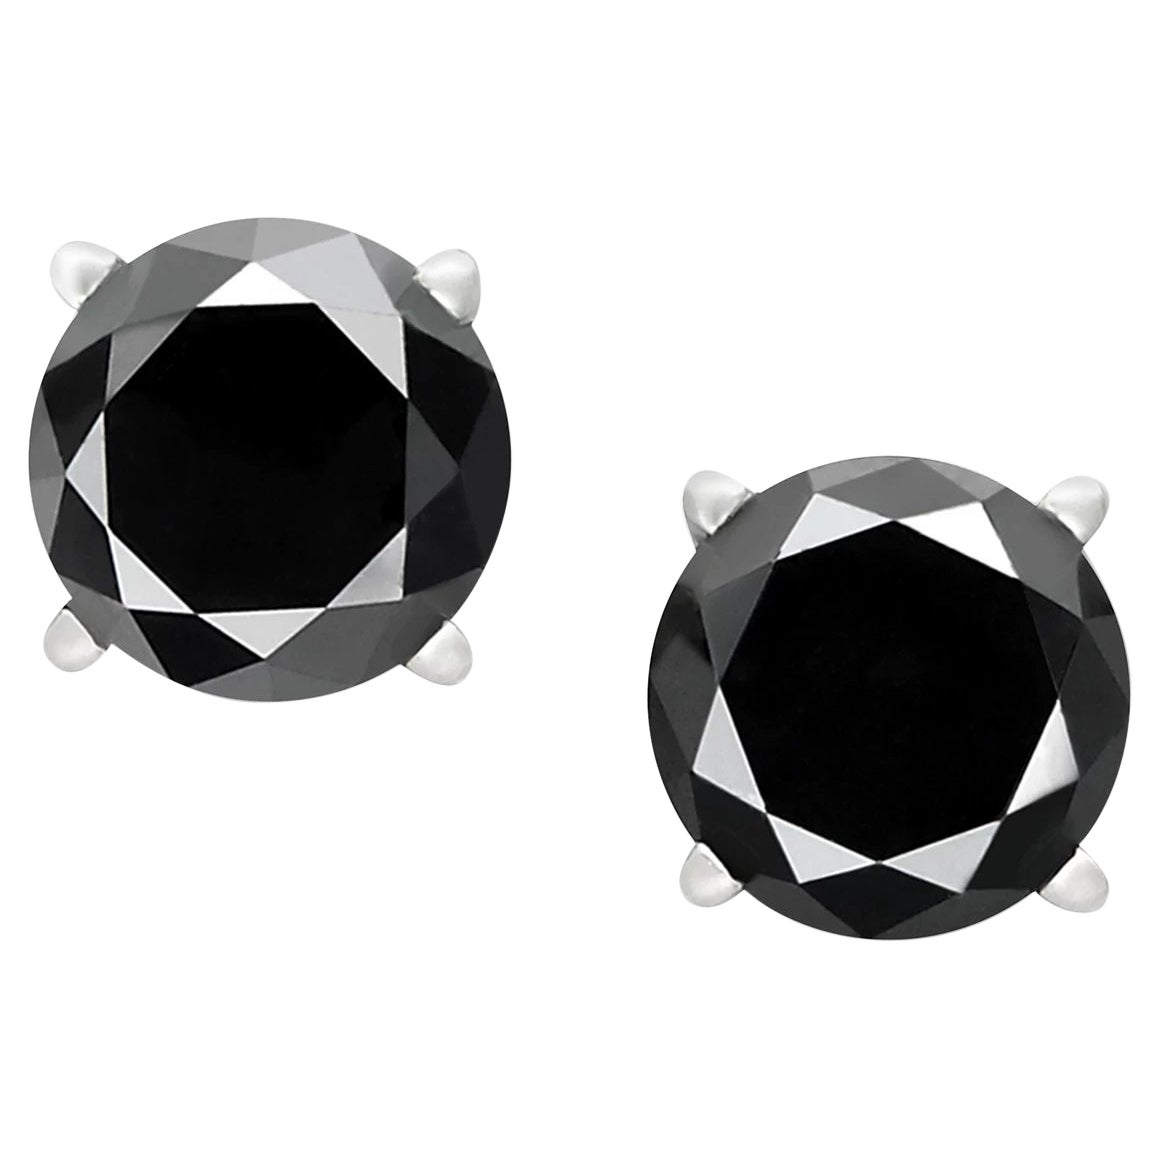 0.8 Carat Total Round Black Diamond Solitaire Stud Earrings in 14 K White Gold